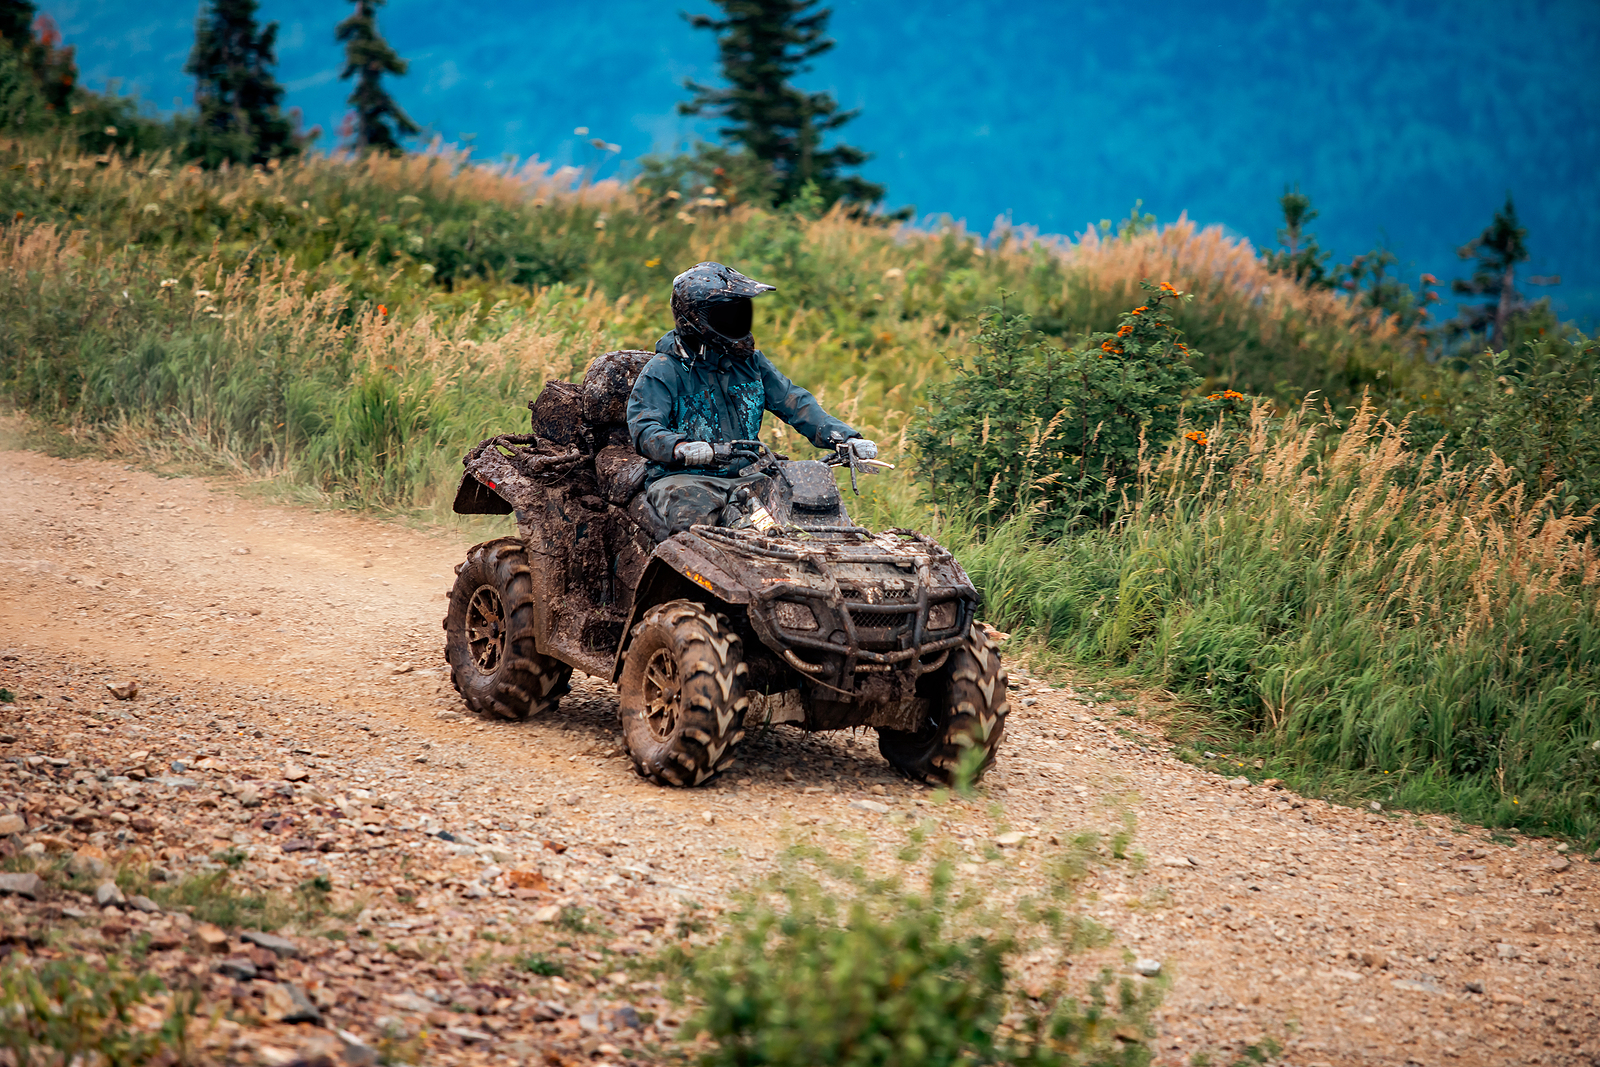 an ATV rider is riding on a dirt trail wearing a helmet.